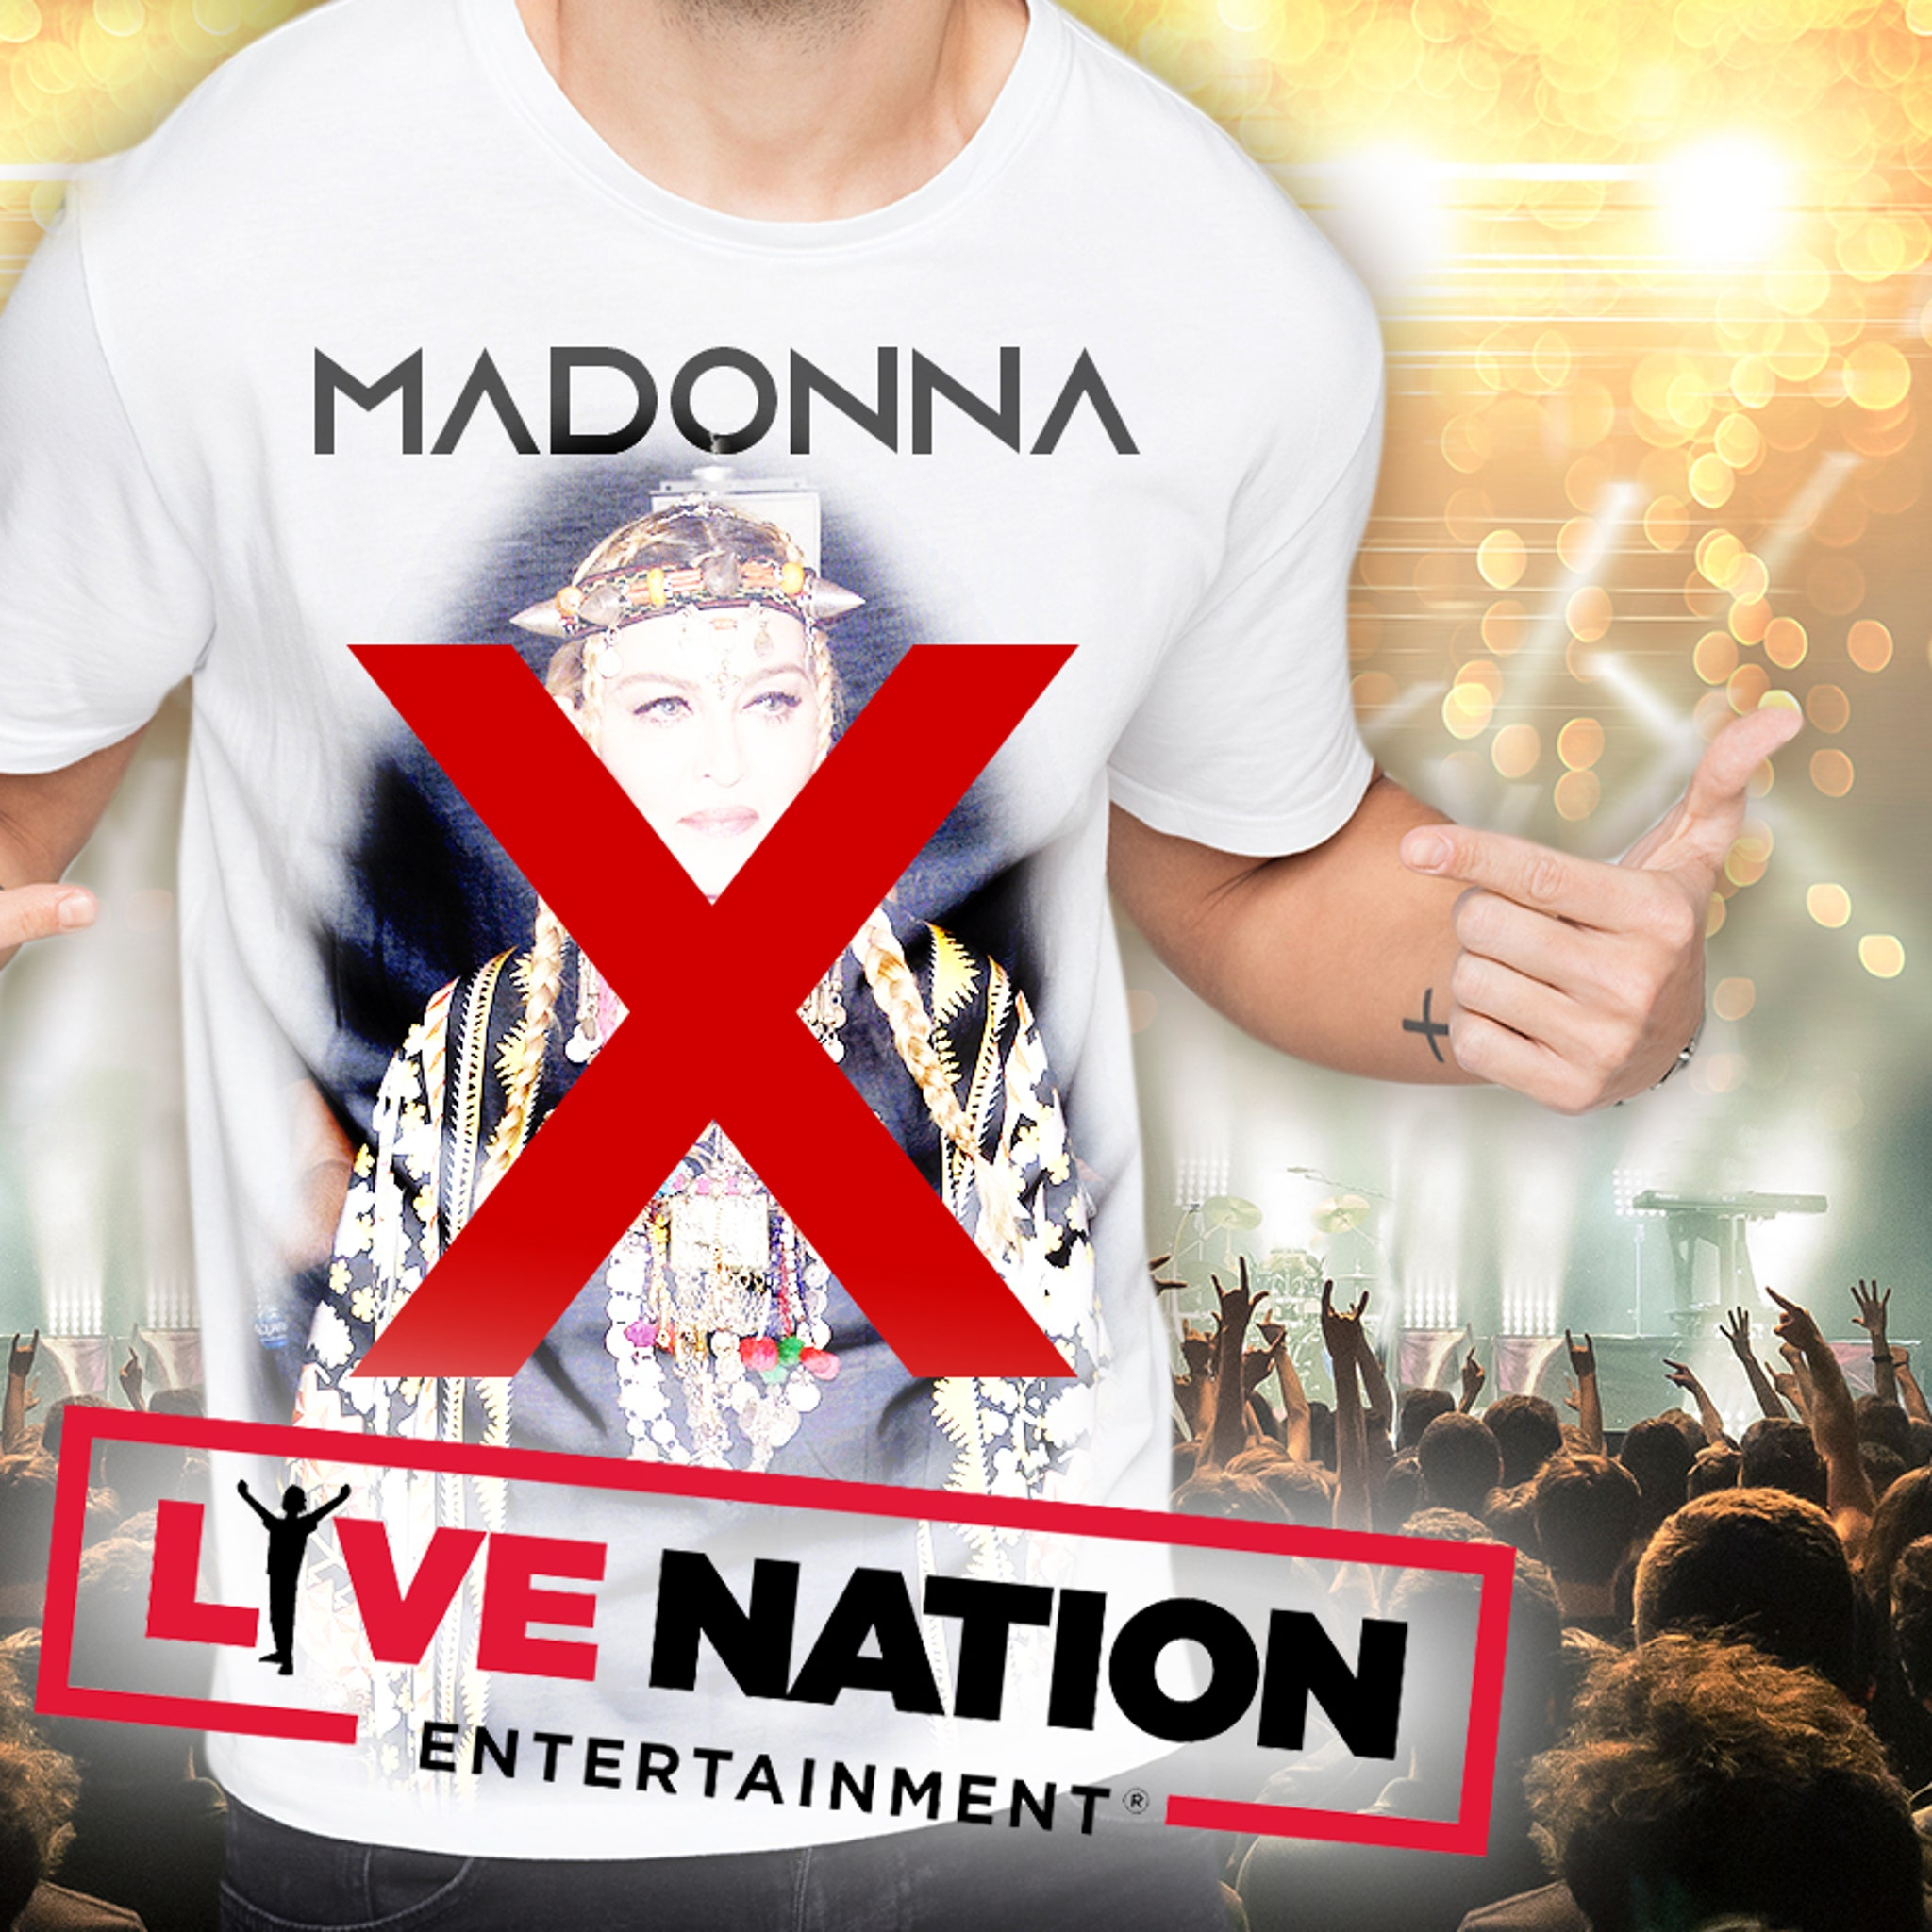 Madonna Merch Bootleggers Targeted by Live Nation